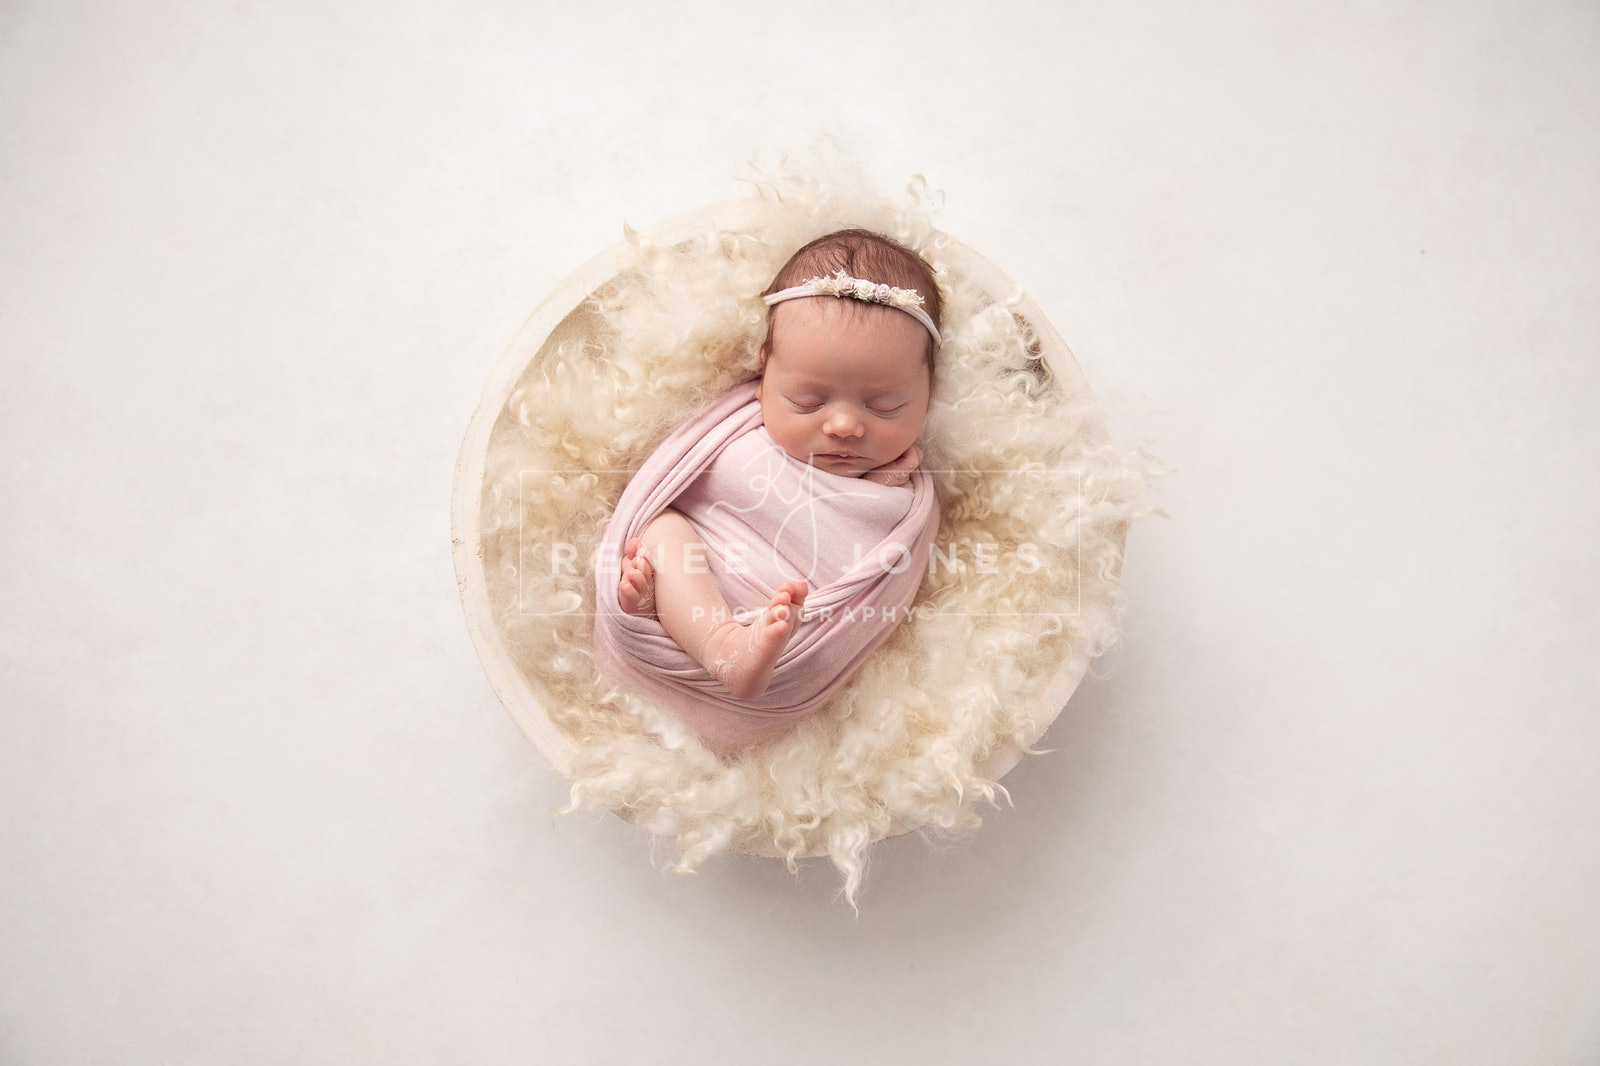 Newborn 2 - Brisbane Newborn Photographer - Baby wrapped and curled in a wooden bowl